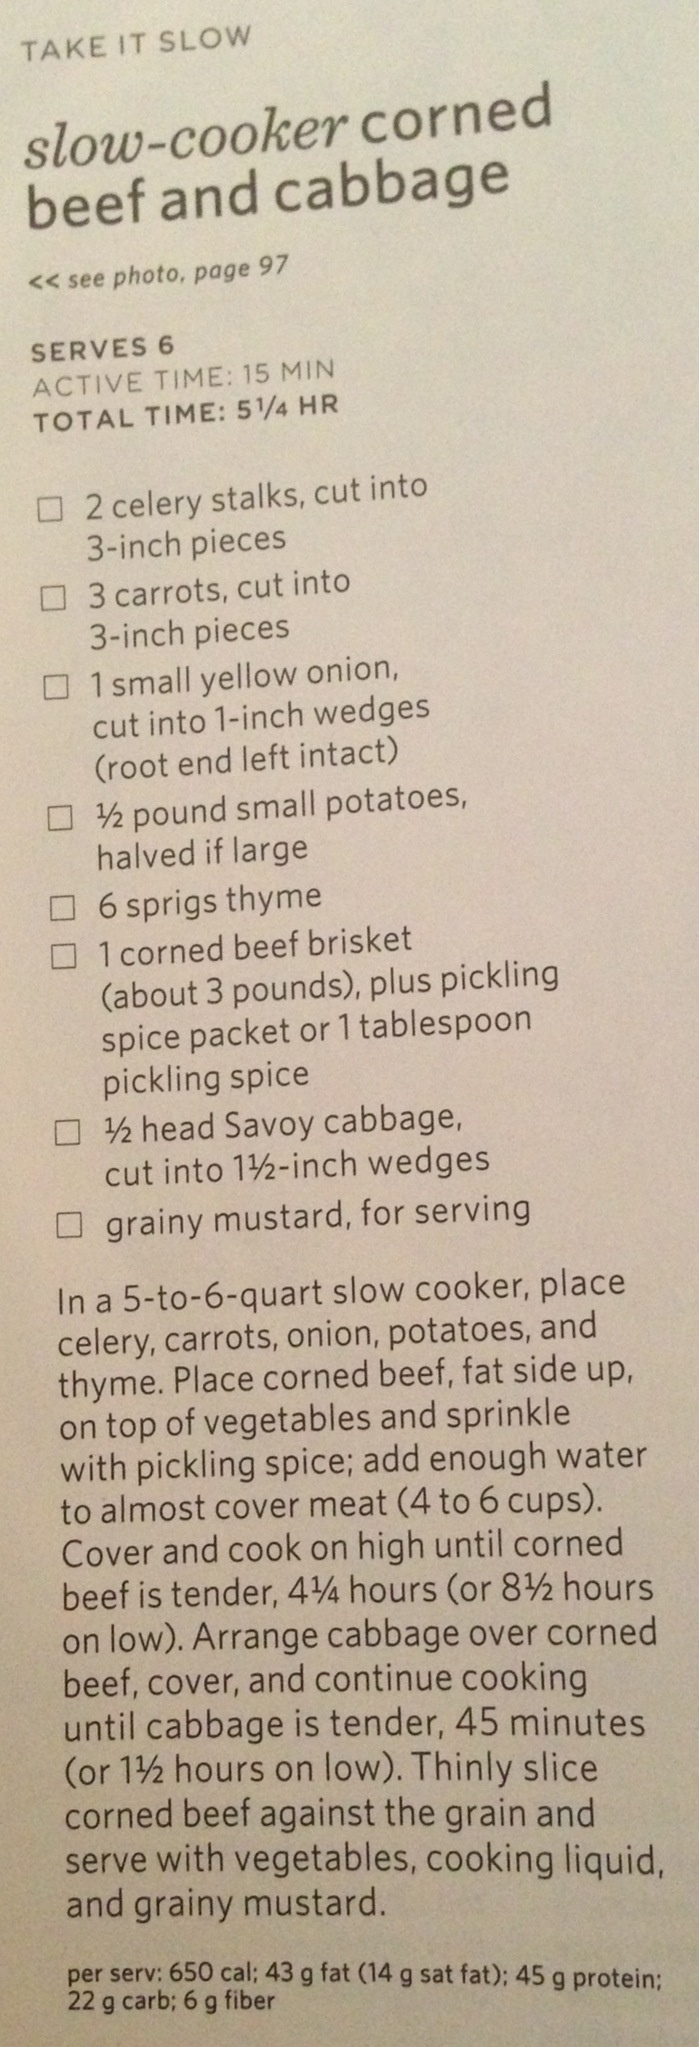 THIS IS MY GO-TO recipe-Crock pot Corned Beef & Cabbage. I use chicken broth as my liquid